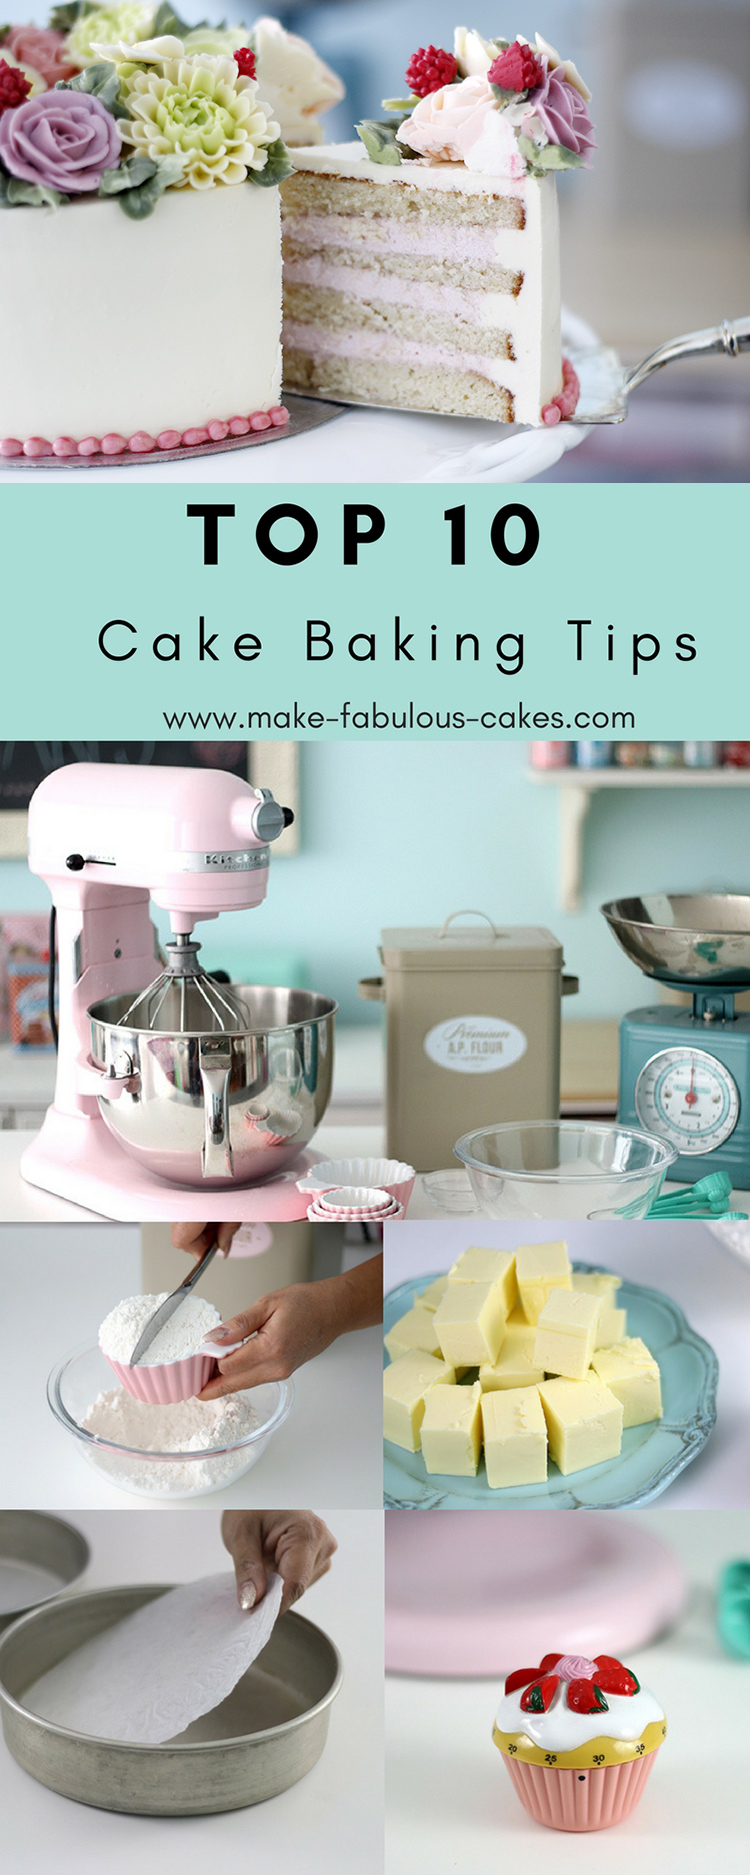 Top 10 Cake Baking Tips